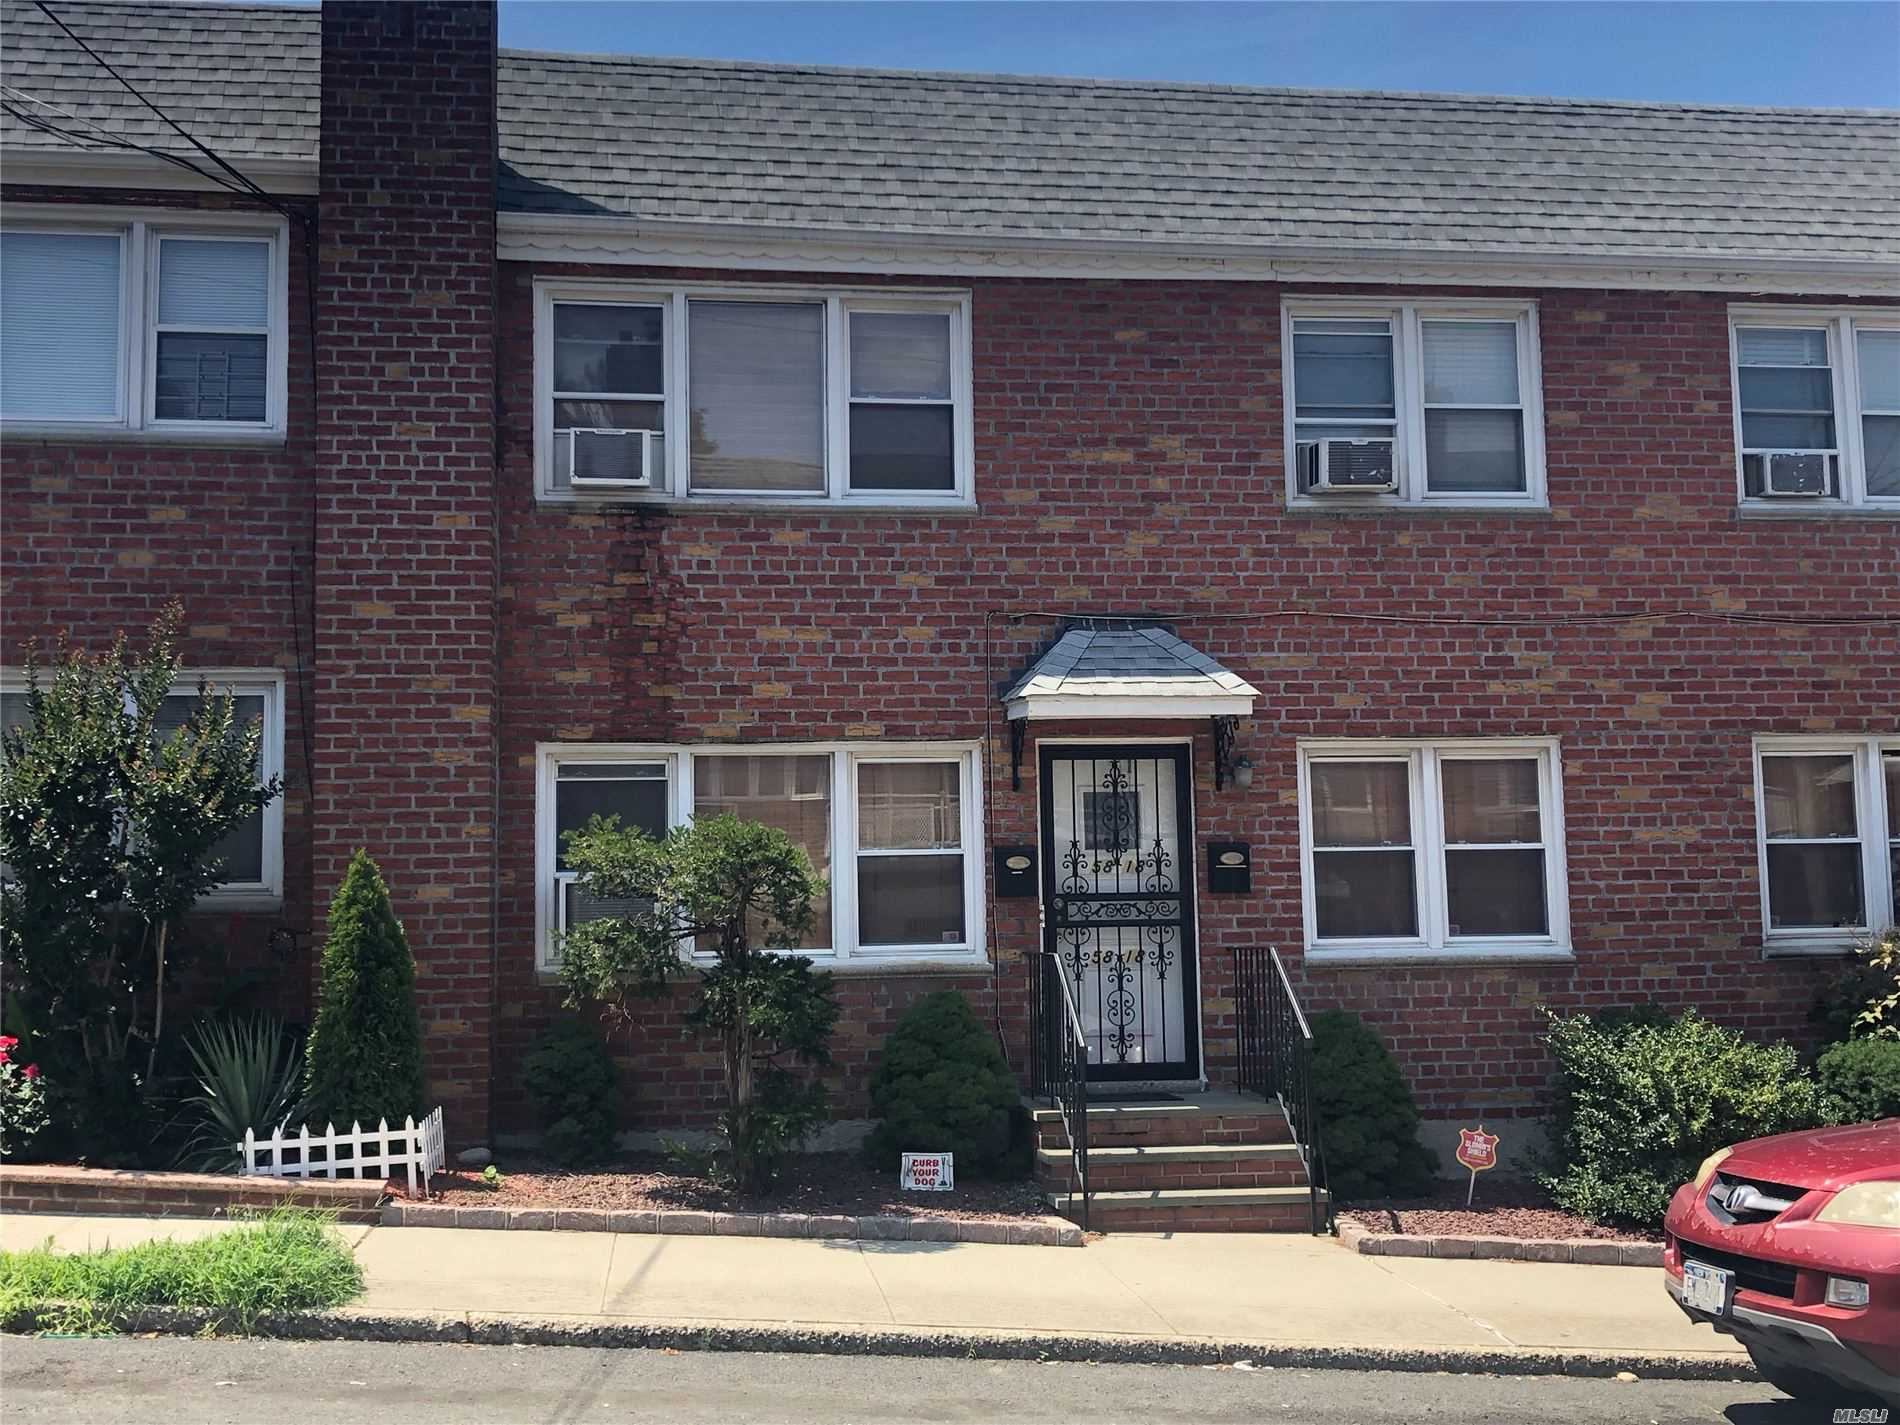 58-18 83rd St, 1 - Middle Village, New York